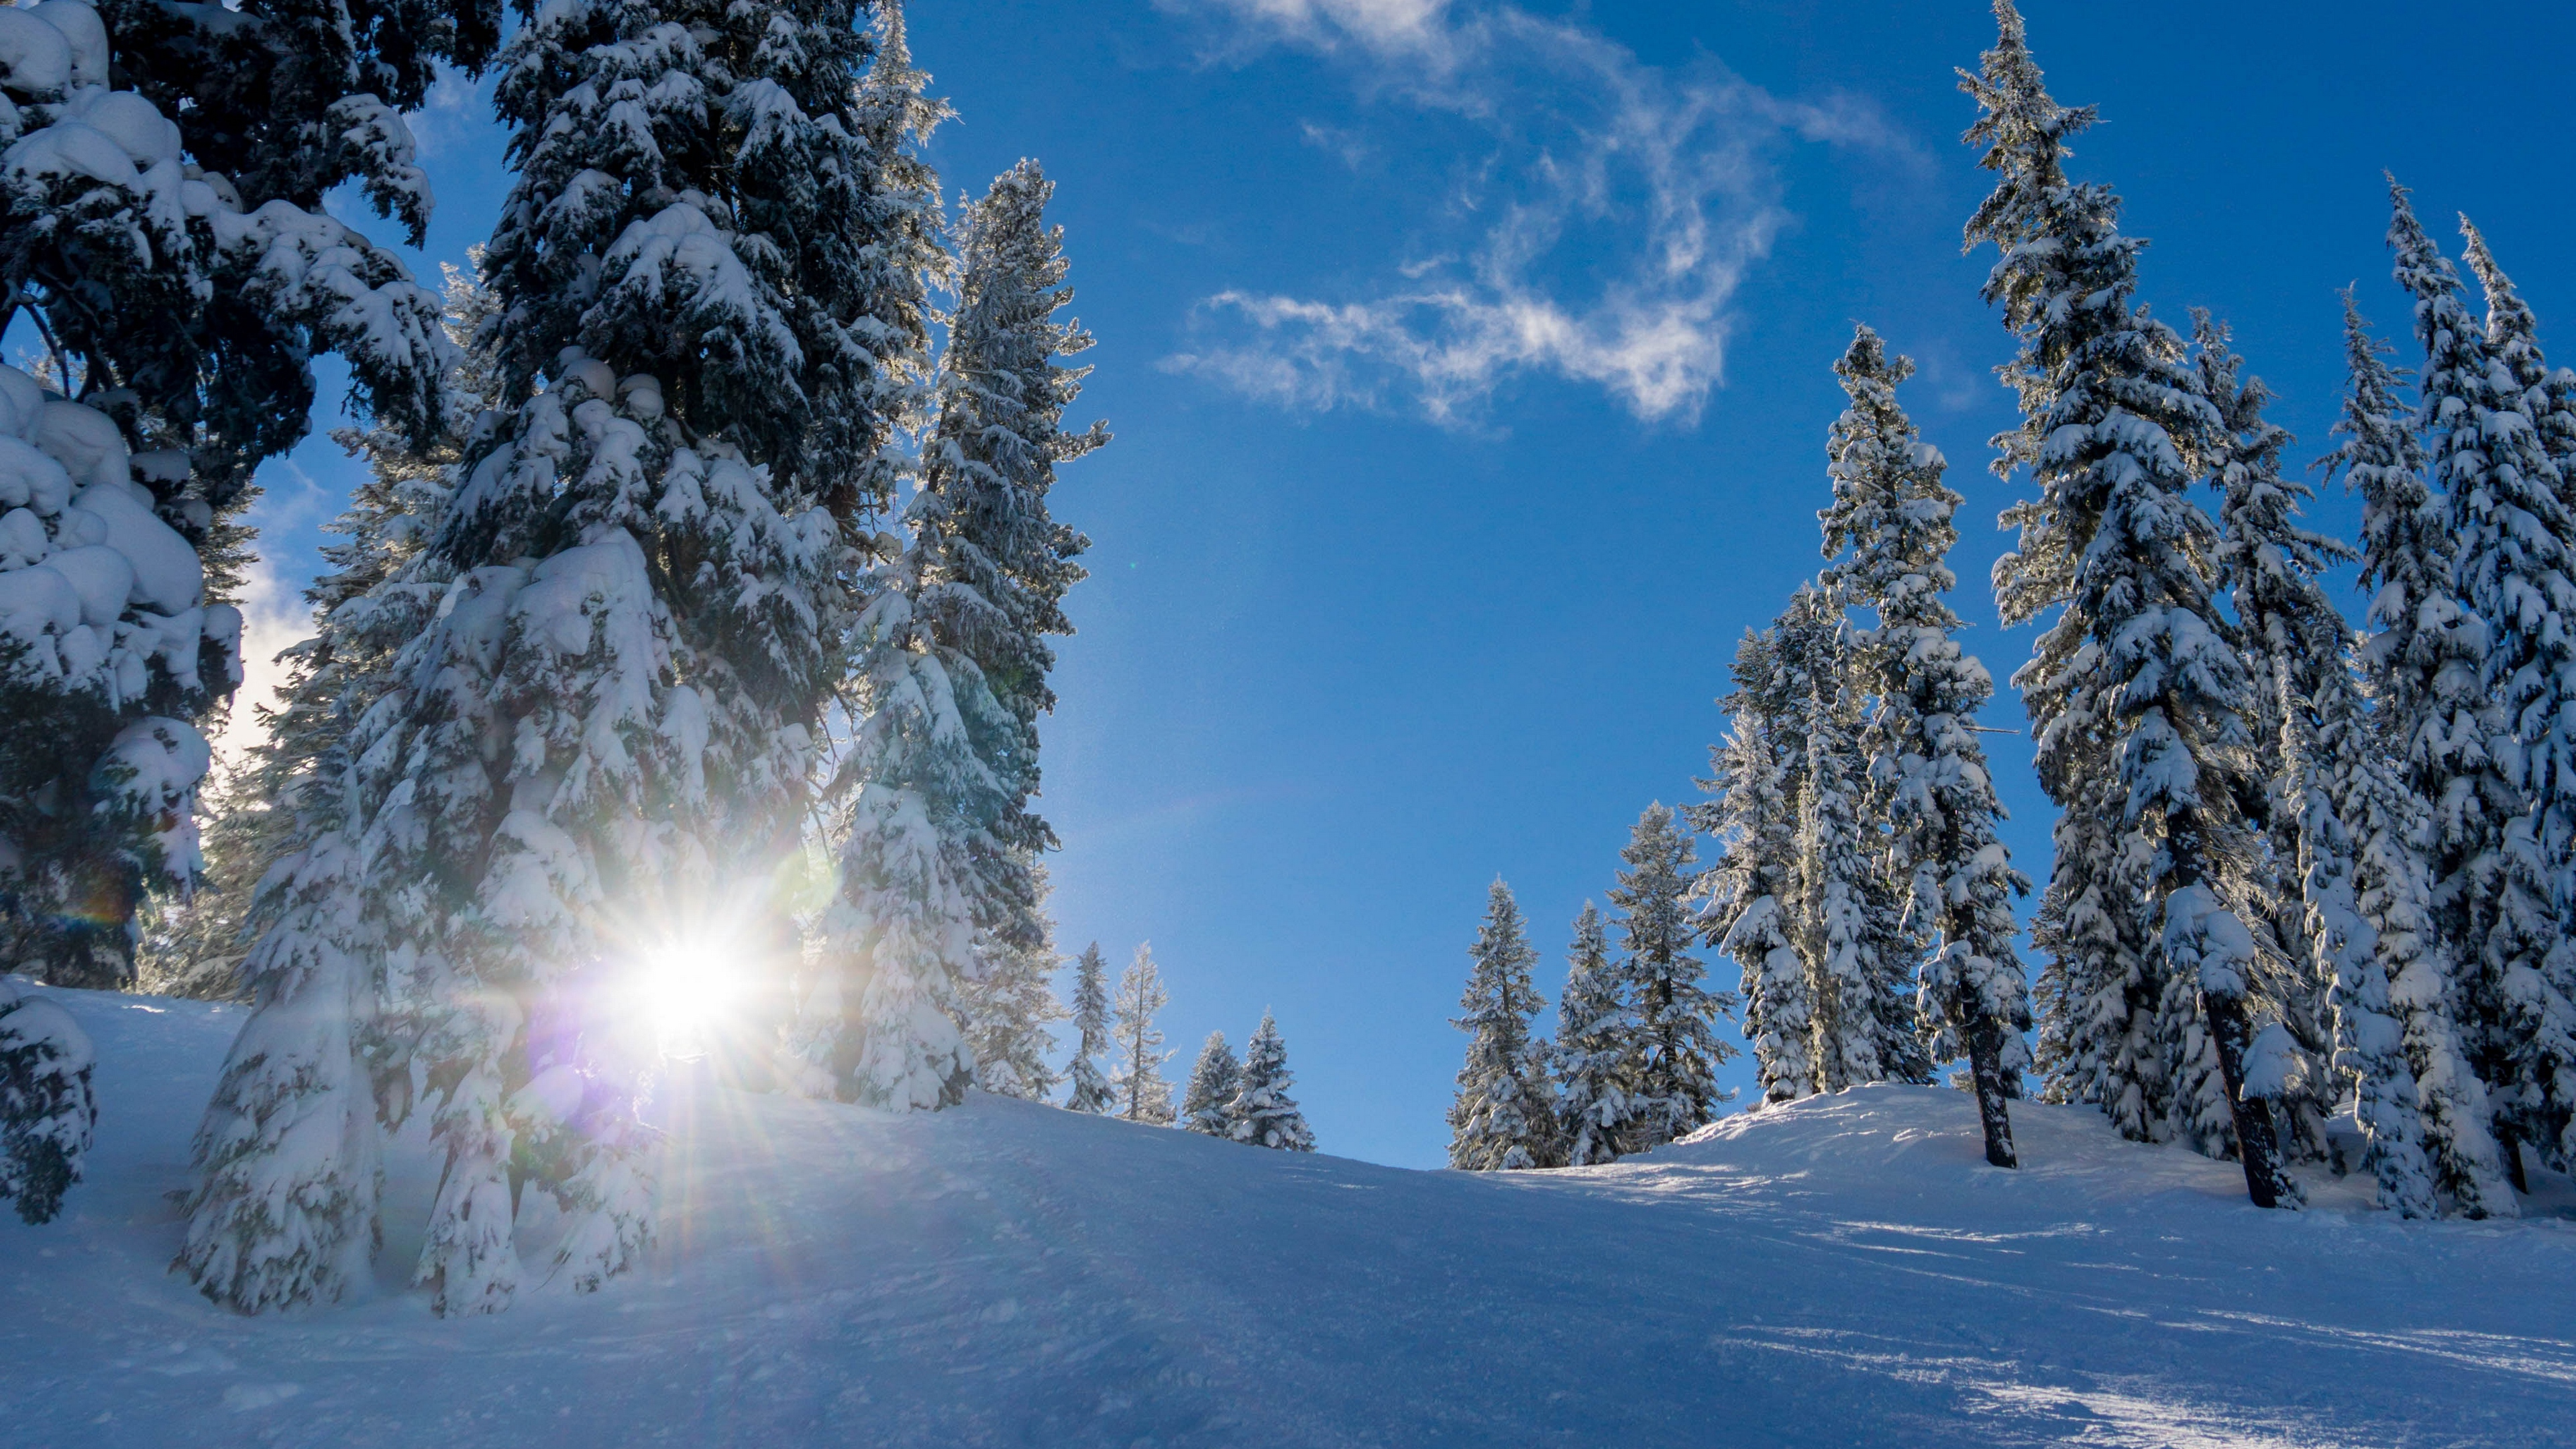 forest winter snow trees sunlight elevation 4k 1541117311 - forest, winter, snow, trees, sunlight, elevation 4k - Winter, Snow, Forest